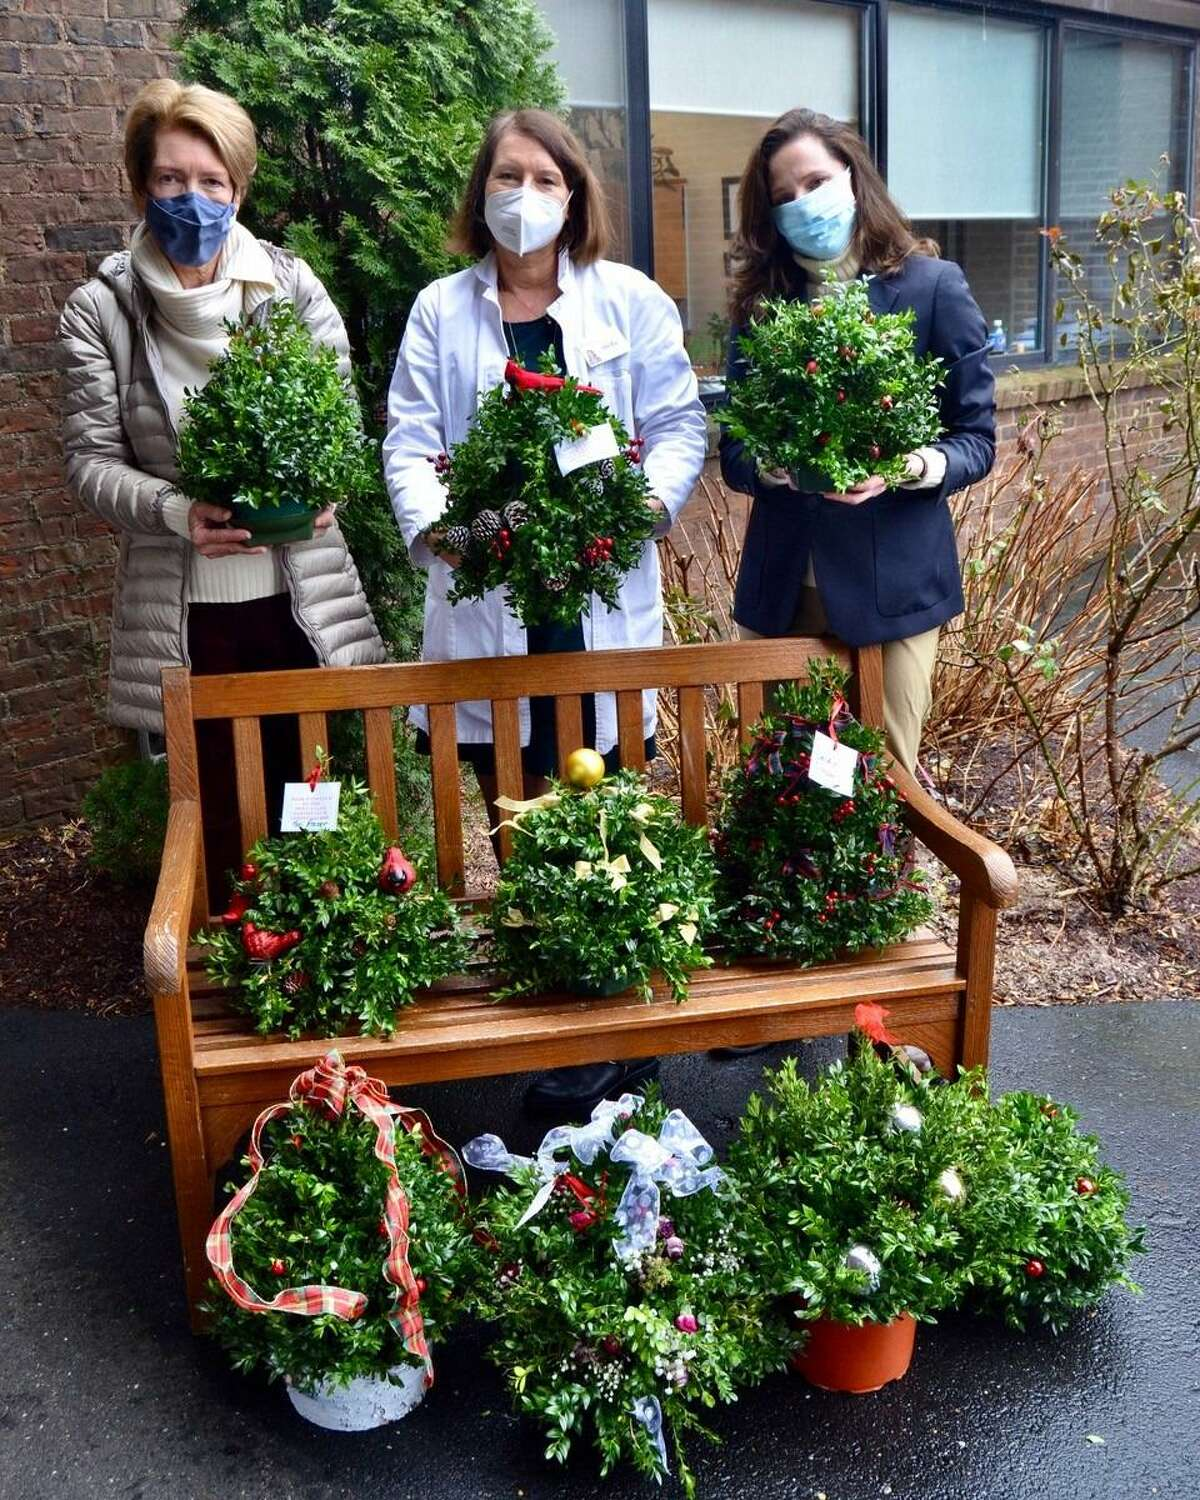 December proved to be a Season of Giving for the New Canaan Garden Club. Pictured is the donation of tabletop boxwood trees to the Waveny LifeCare Network. Pictured, left to right, are Ellen McMahon, co-chair of the club's Hort Therapy, Stella Clarke, executive director of Community Engagement and Volunteering at the Network, and Rachel Whitcomb, co-chair of the club's Hort Therapy.